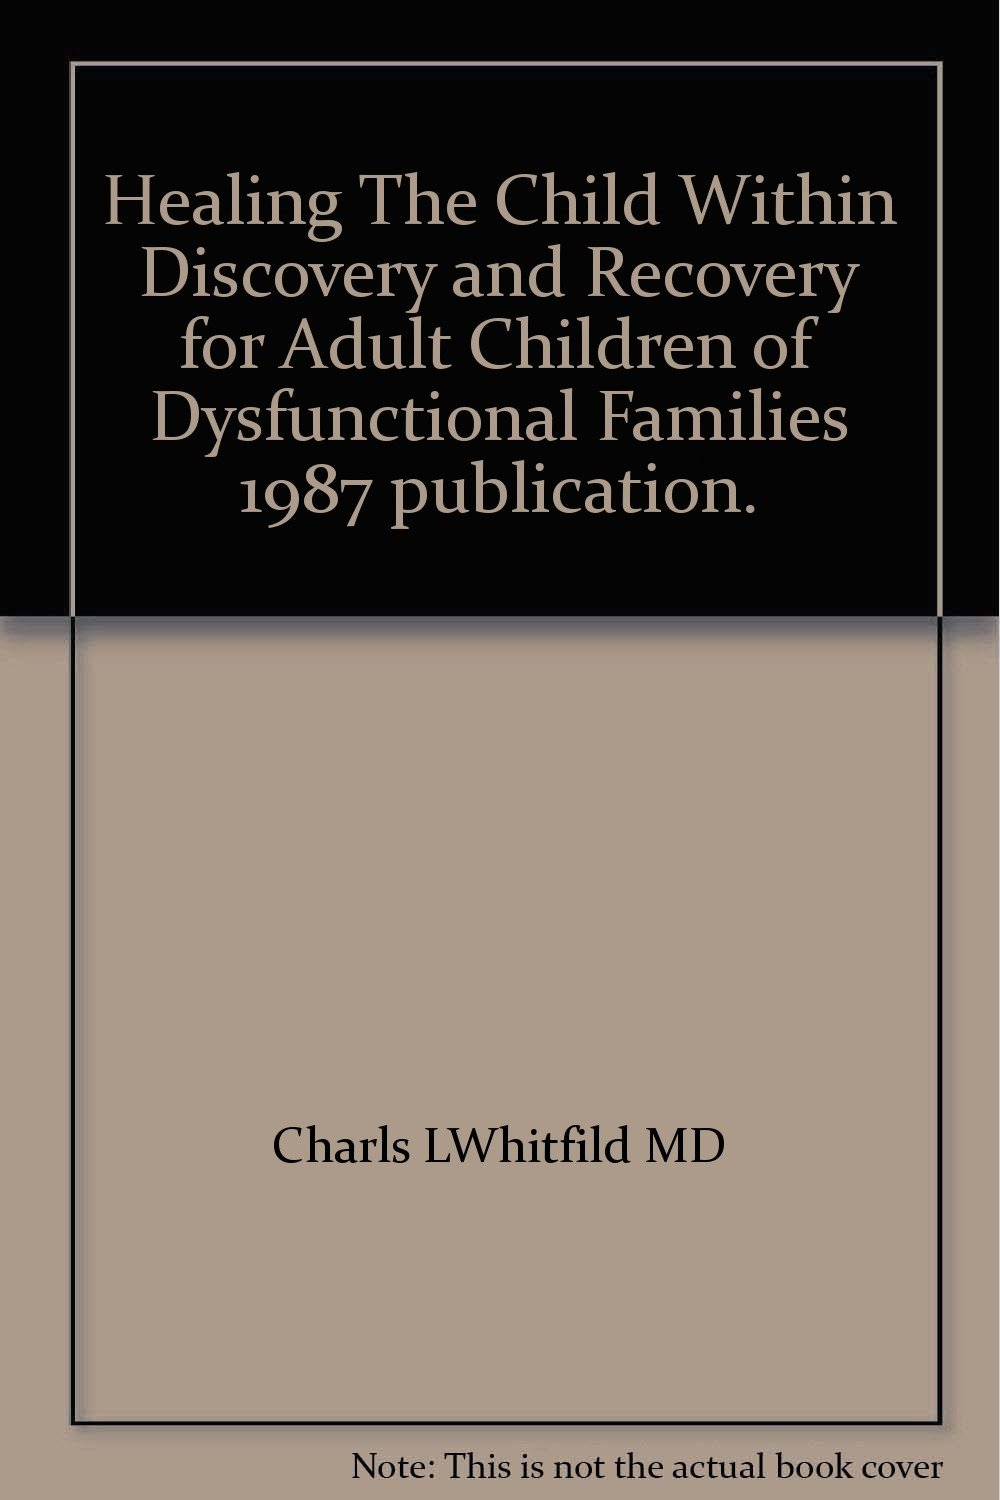 Healing The Child Within Discovery and Recovery for Adult Children of Dysfunctional Families 1987 publication.